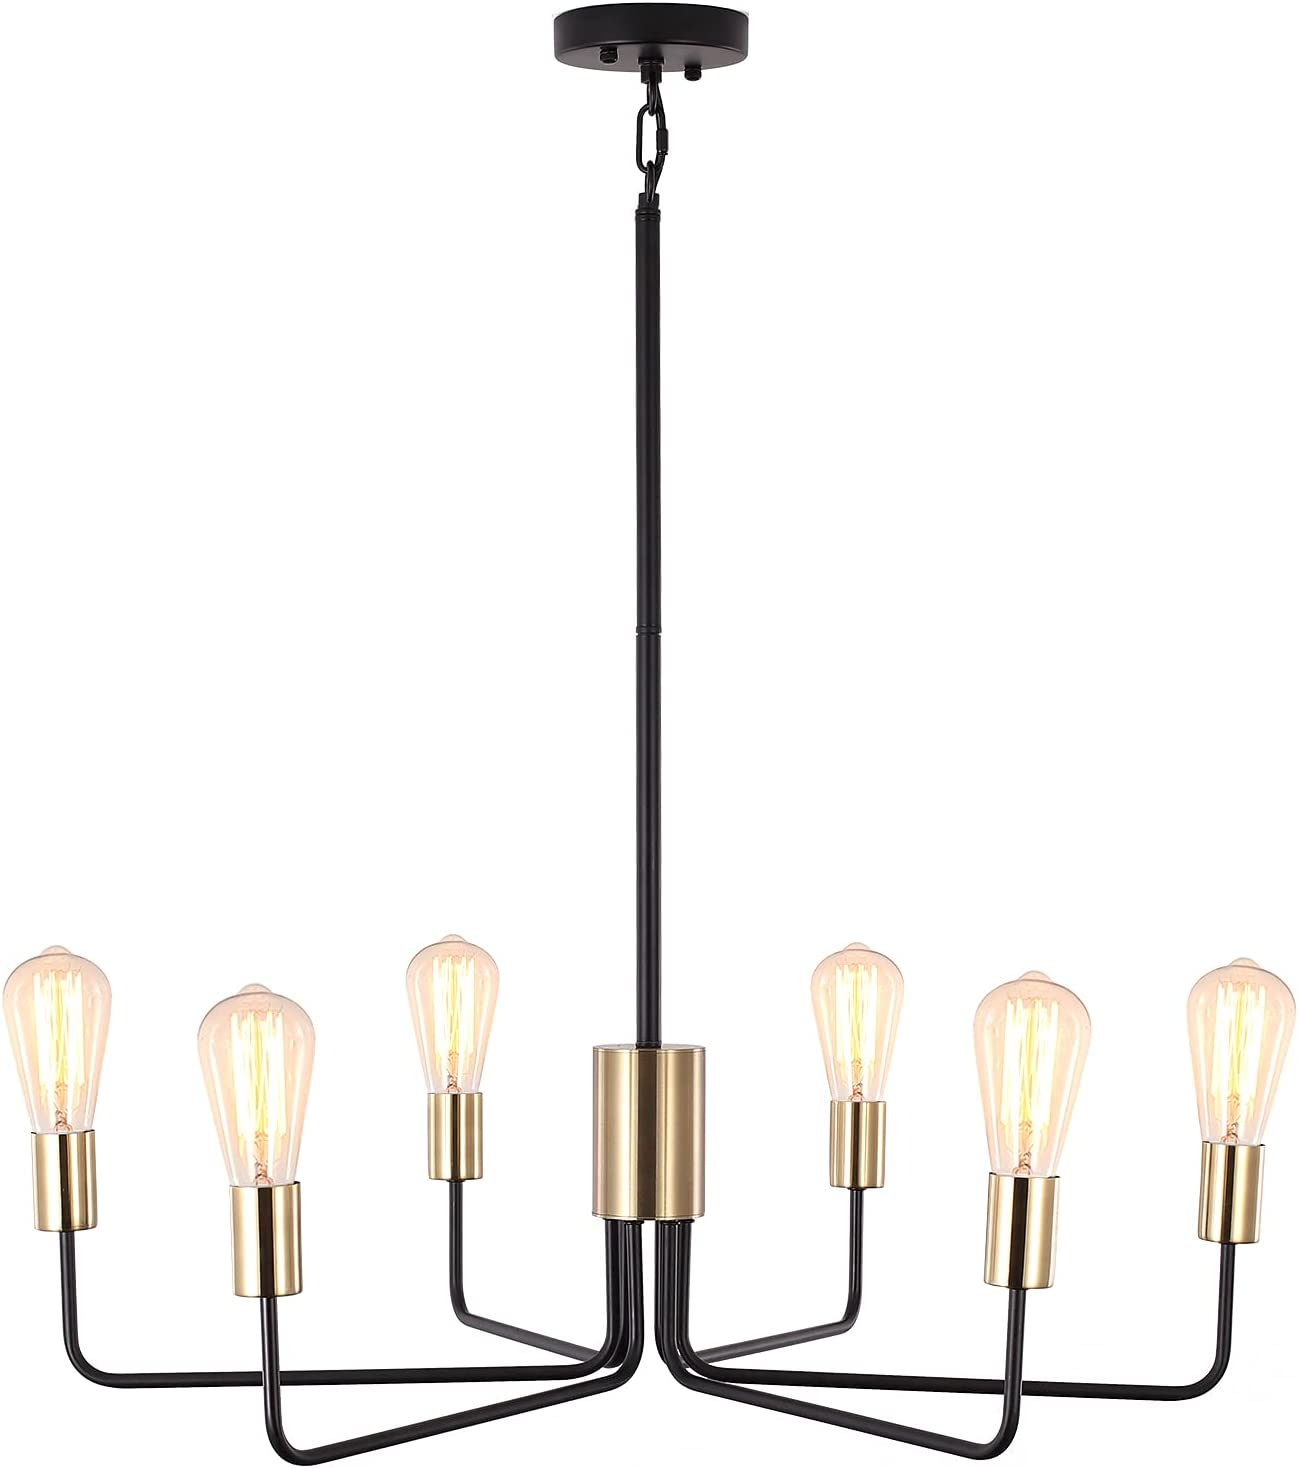 Modern Chandelier 6-Light JDfeiFFF Inventory cleanup selling Max 74% OFF sale Gold Penda and Black Ceiling